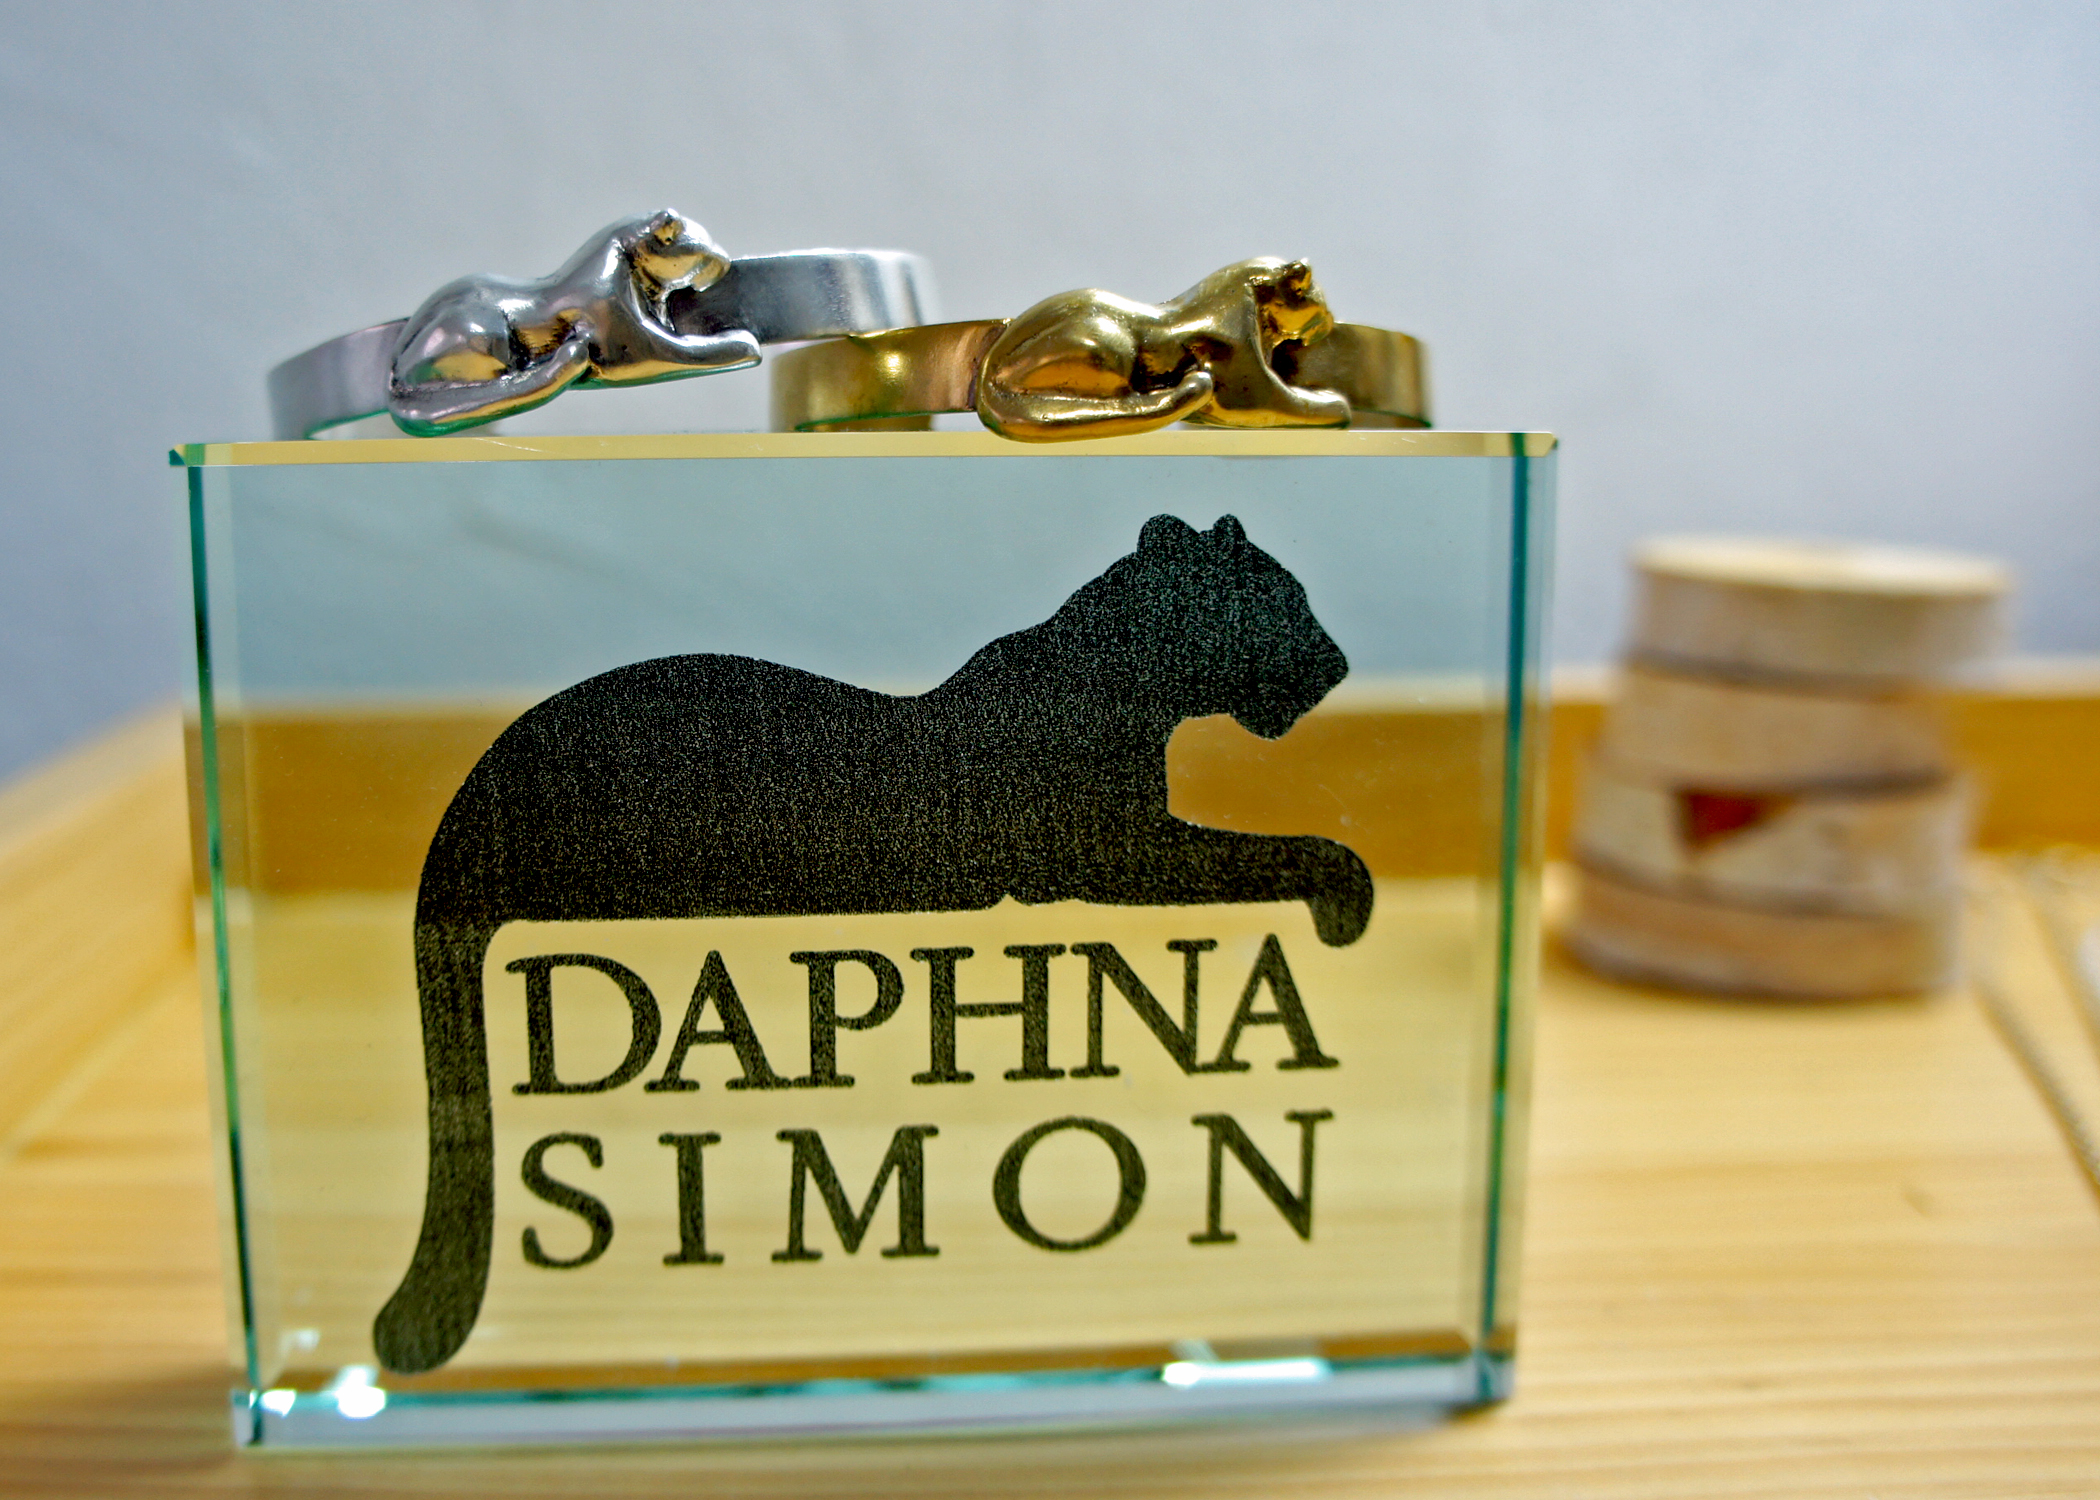 daphna simon jewelry b1